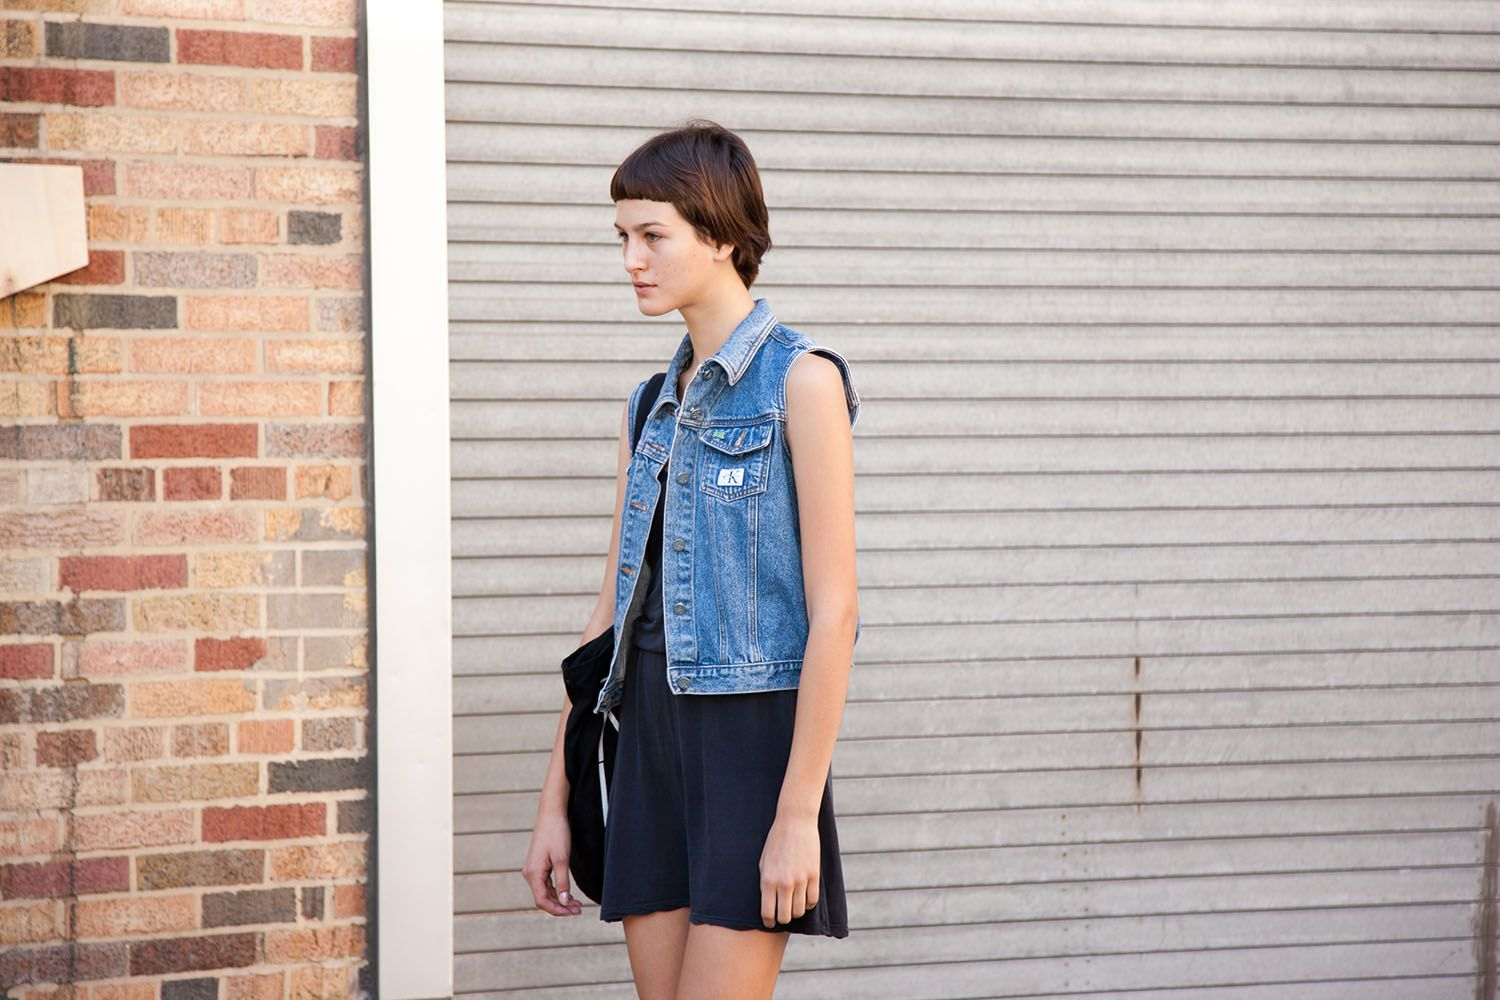 Our obsession with denim waistcoats continues.